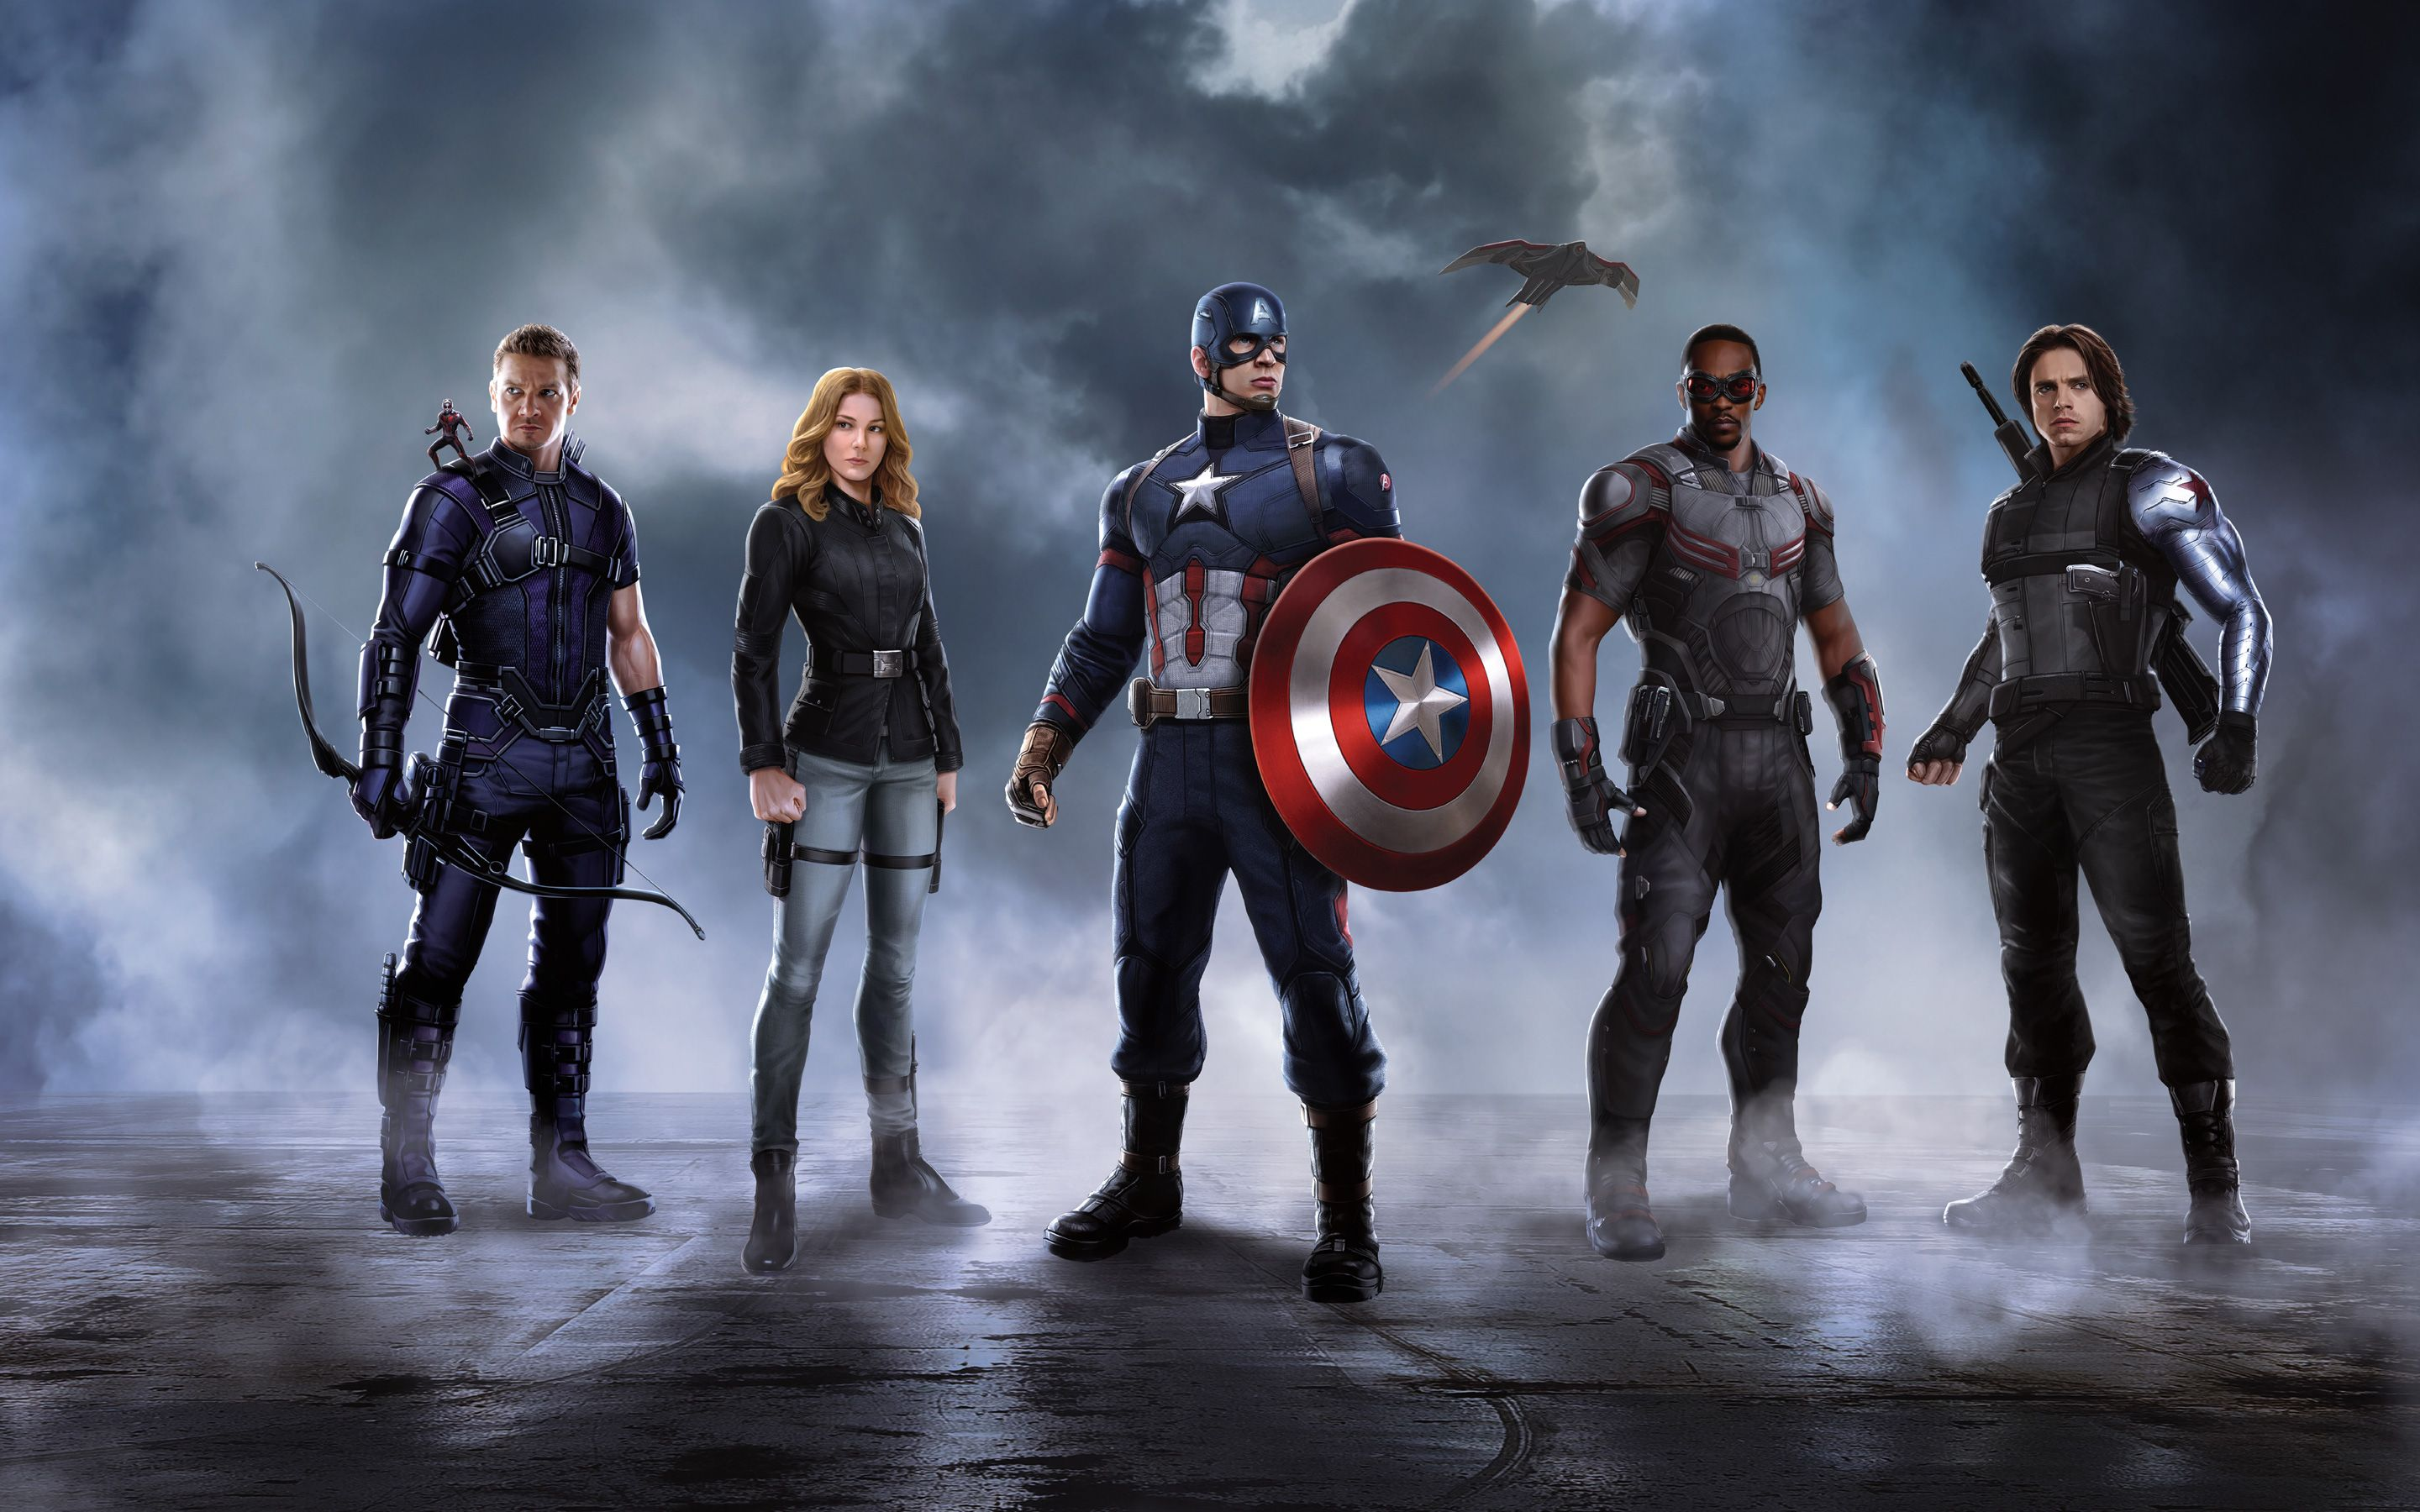 Hd wallpaper of captain america - Captain America Hd Wallpapers Backgrounds Wallpaper